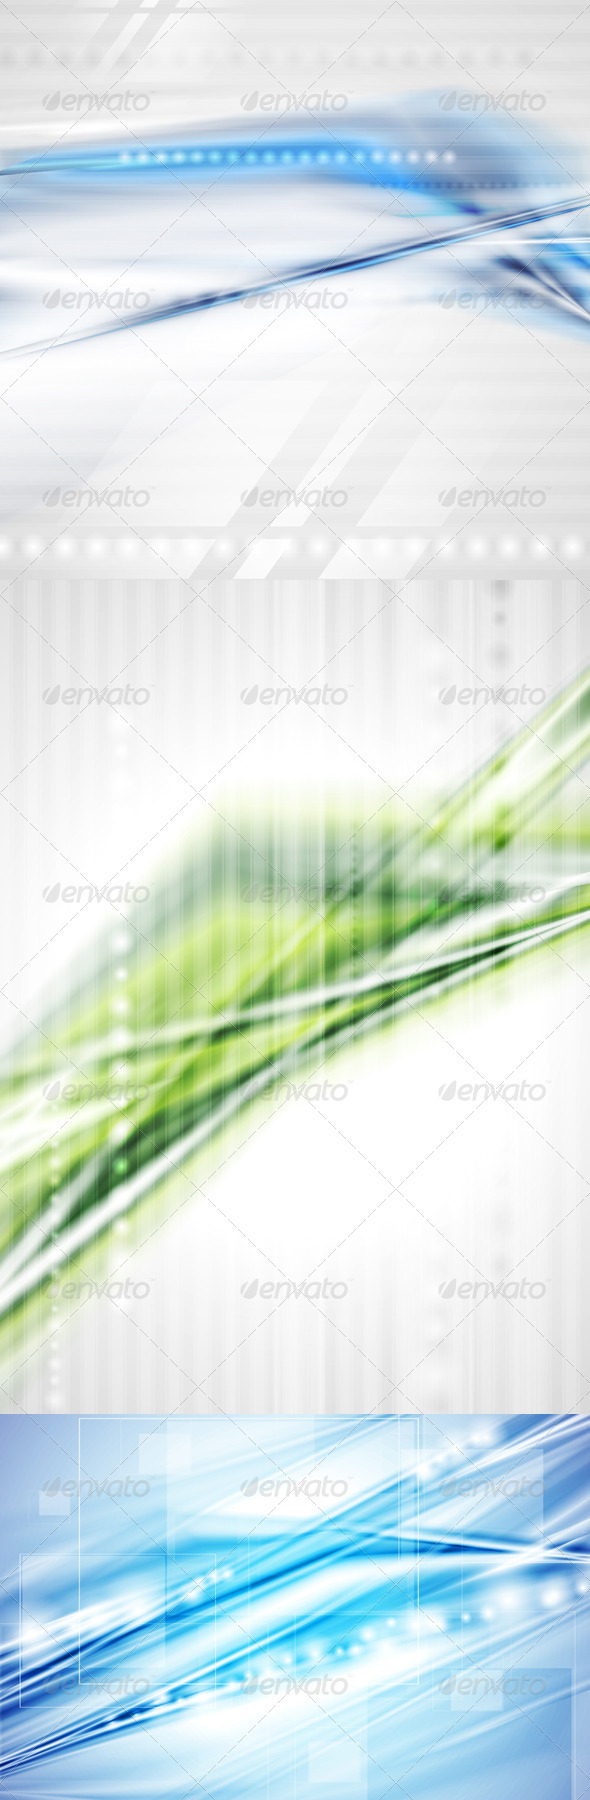 Abstract Modern Technical Backgrounds - Backgrounds Decorative